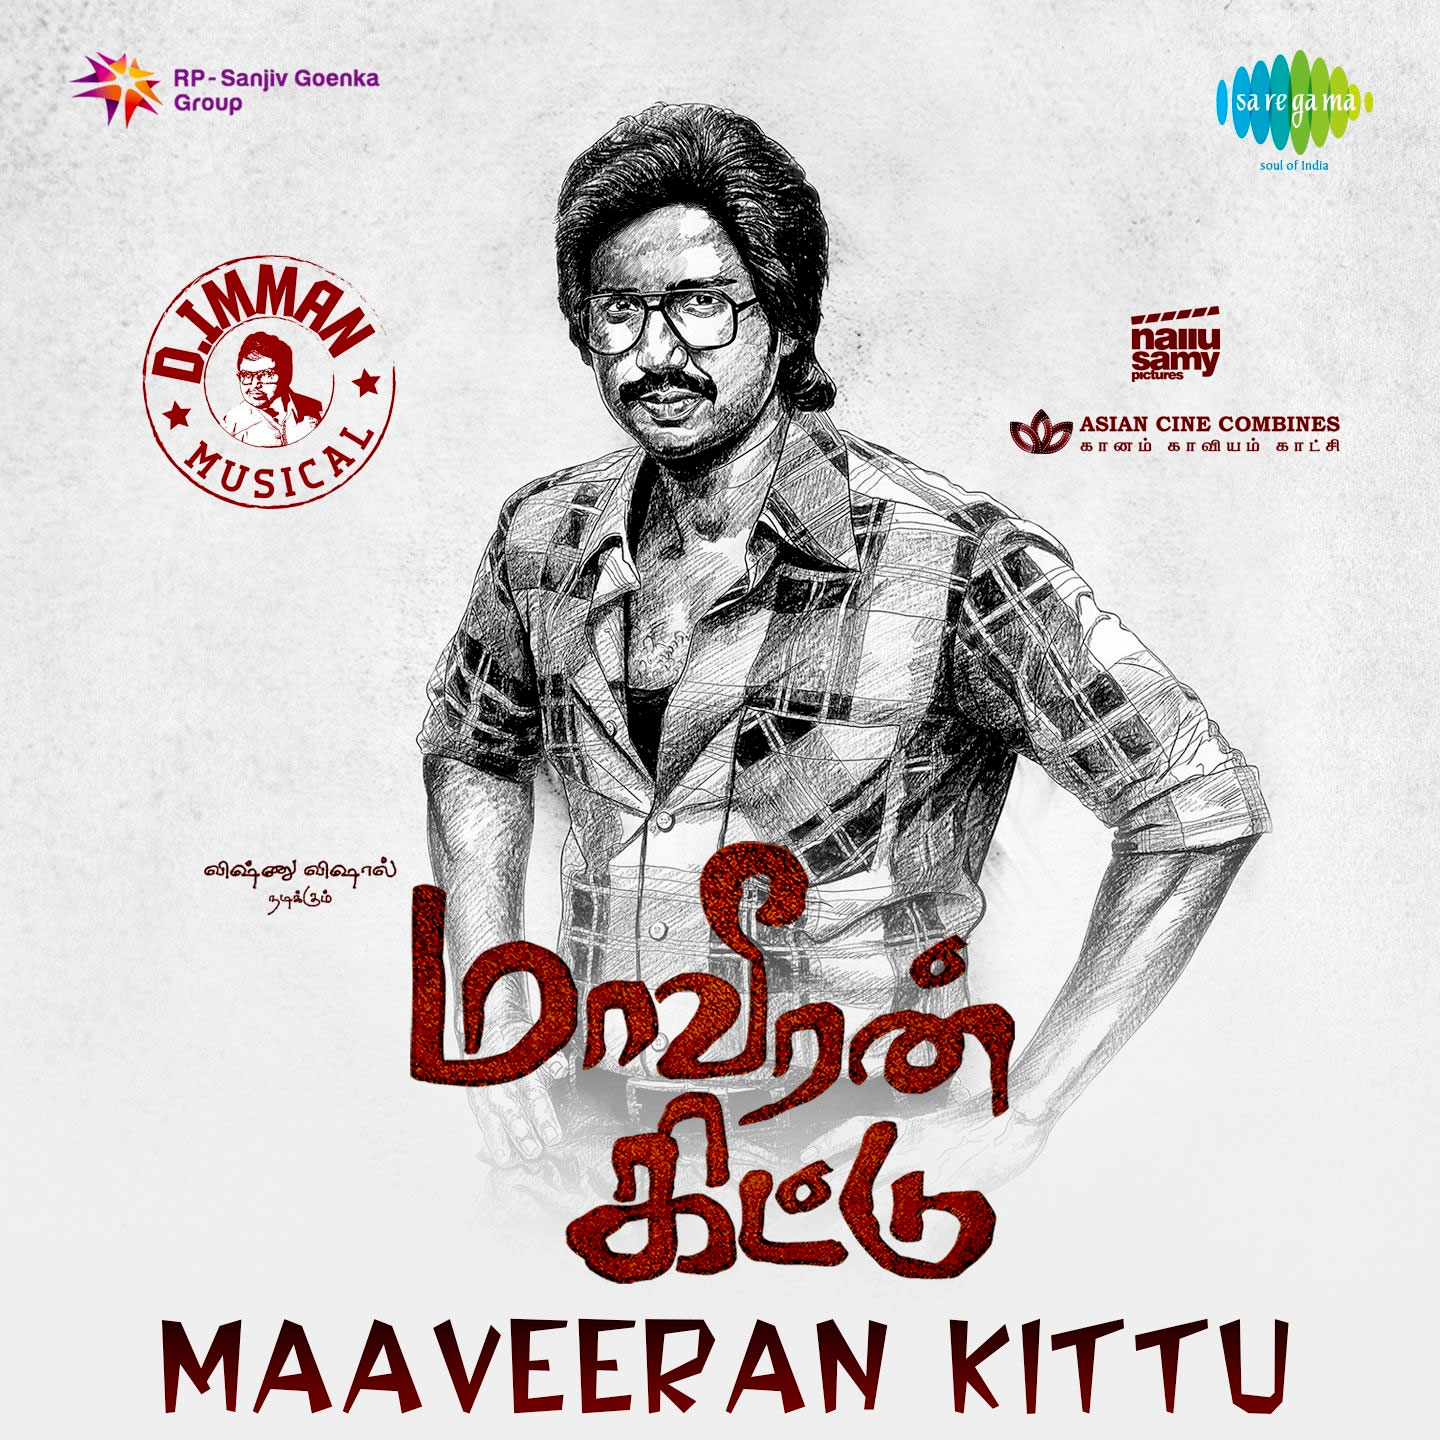 Maaveeran-Kittu-2016-Original-CD-Front-Cover-Poster-Wallpaper-HD